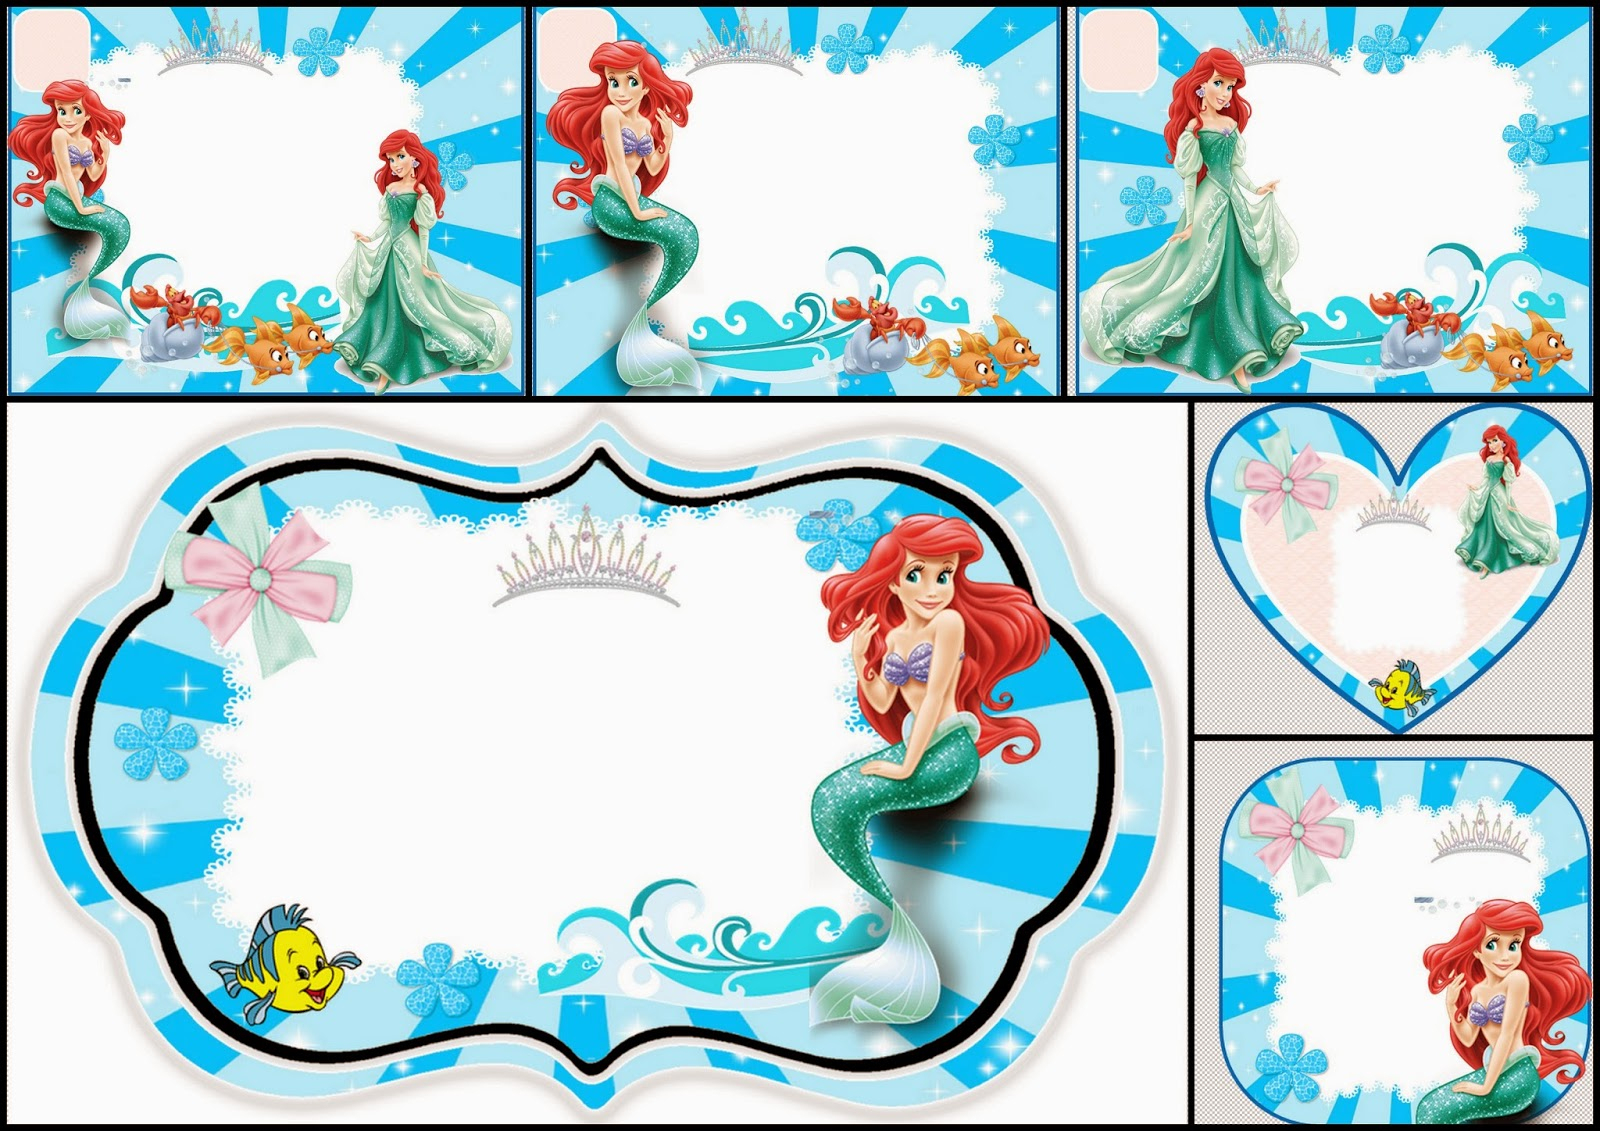 The Little Mermaid Free Printable Invitations, Cards Or Photo Frames - Free Little Mermaid Printable Invitations